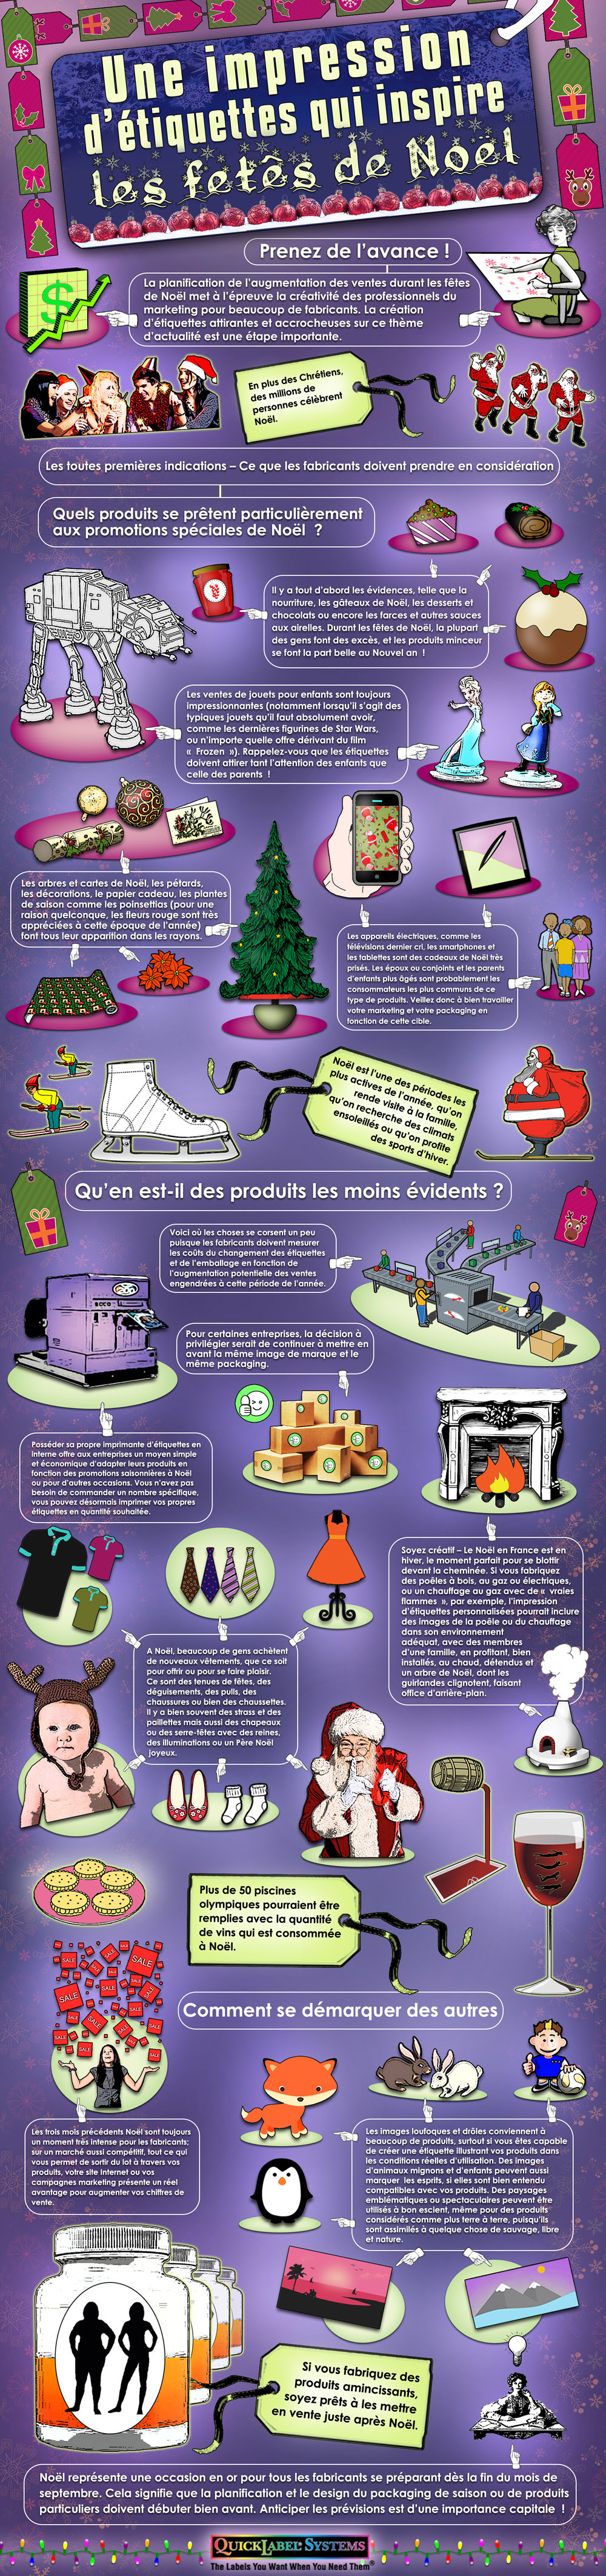 Infographic for Quicklabel in French - Label Printing for Christmas Flair for sharing on social media